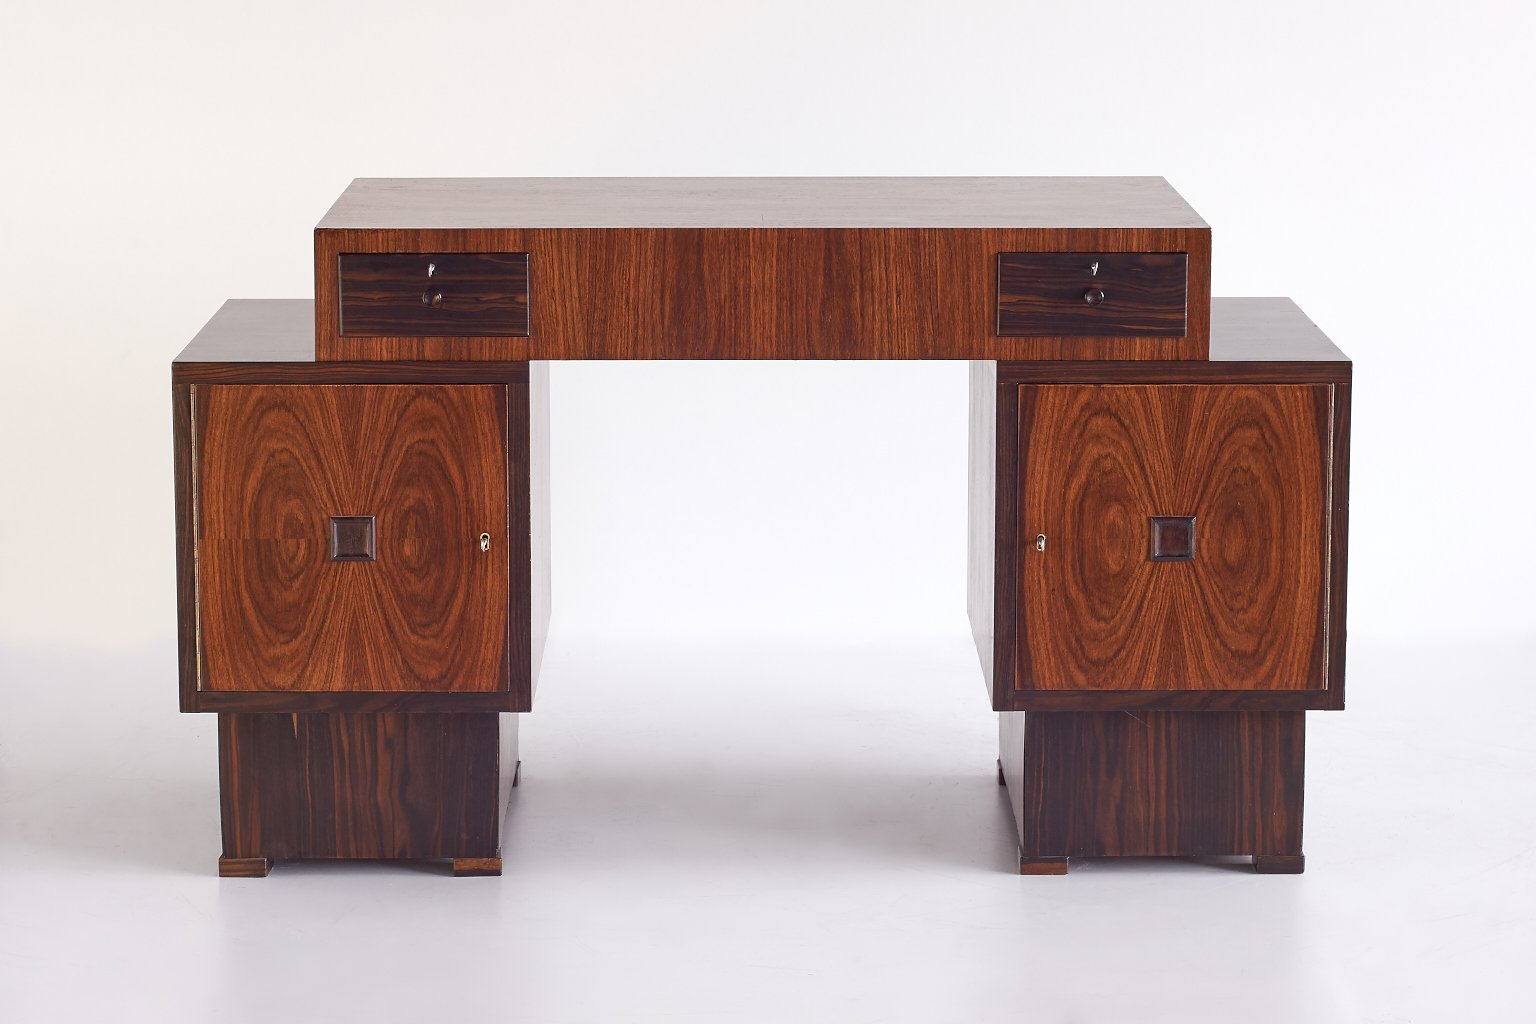 Art Deco Rosewood And Macassar Ebony Desk From U0027t Woonhuys Amsterdam, 1920s